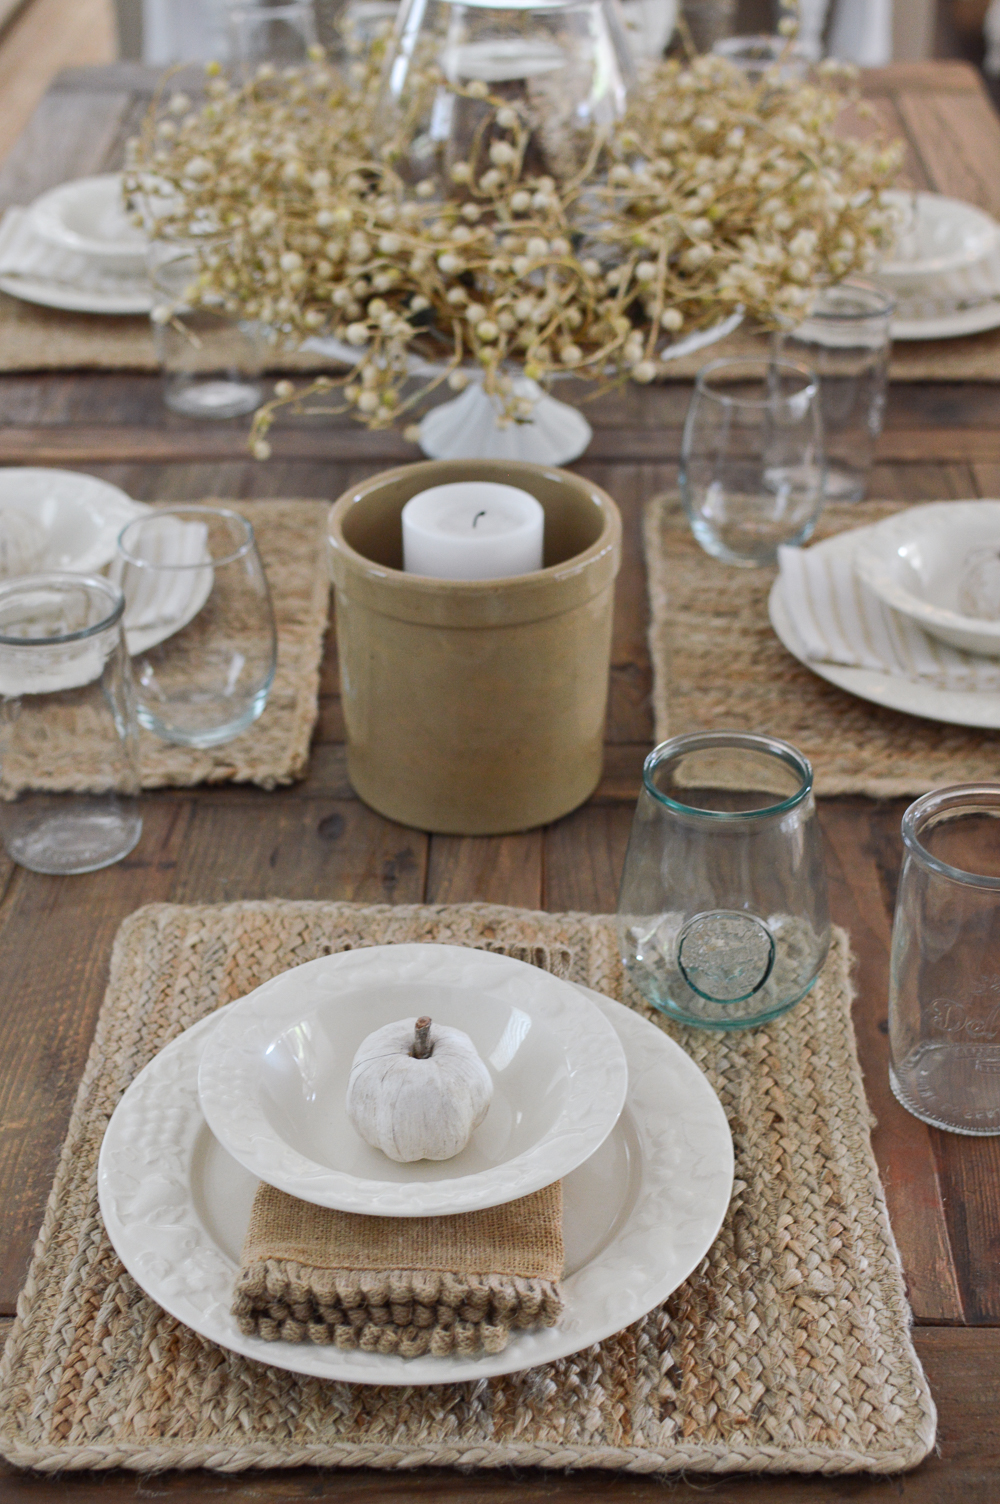 Simple Fall Dining Room Decorating Ideas - Farm table with Natural Elements and Neutral Decor